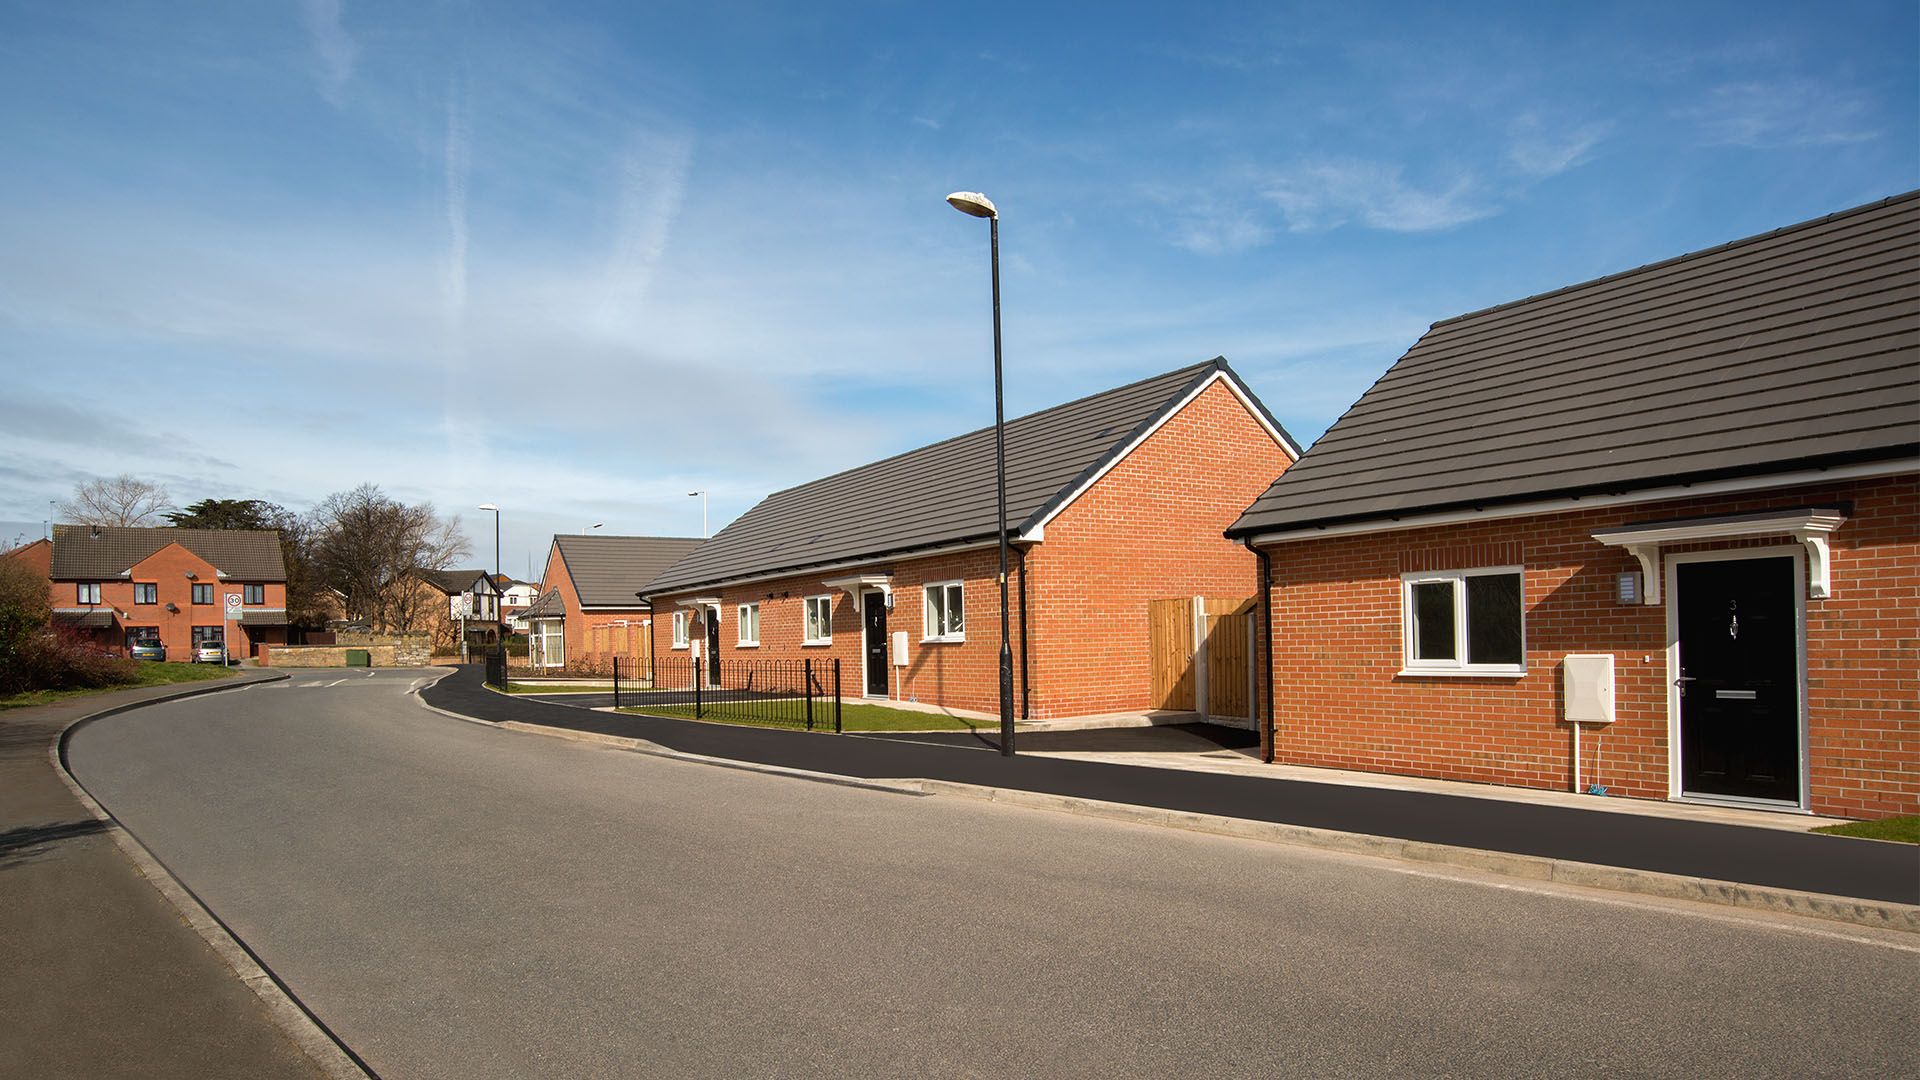 MBE Construction - Building, Developments, Social Housing - North West